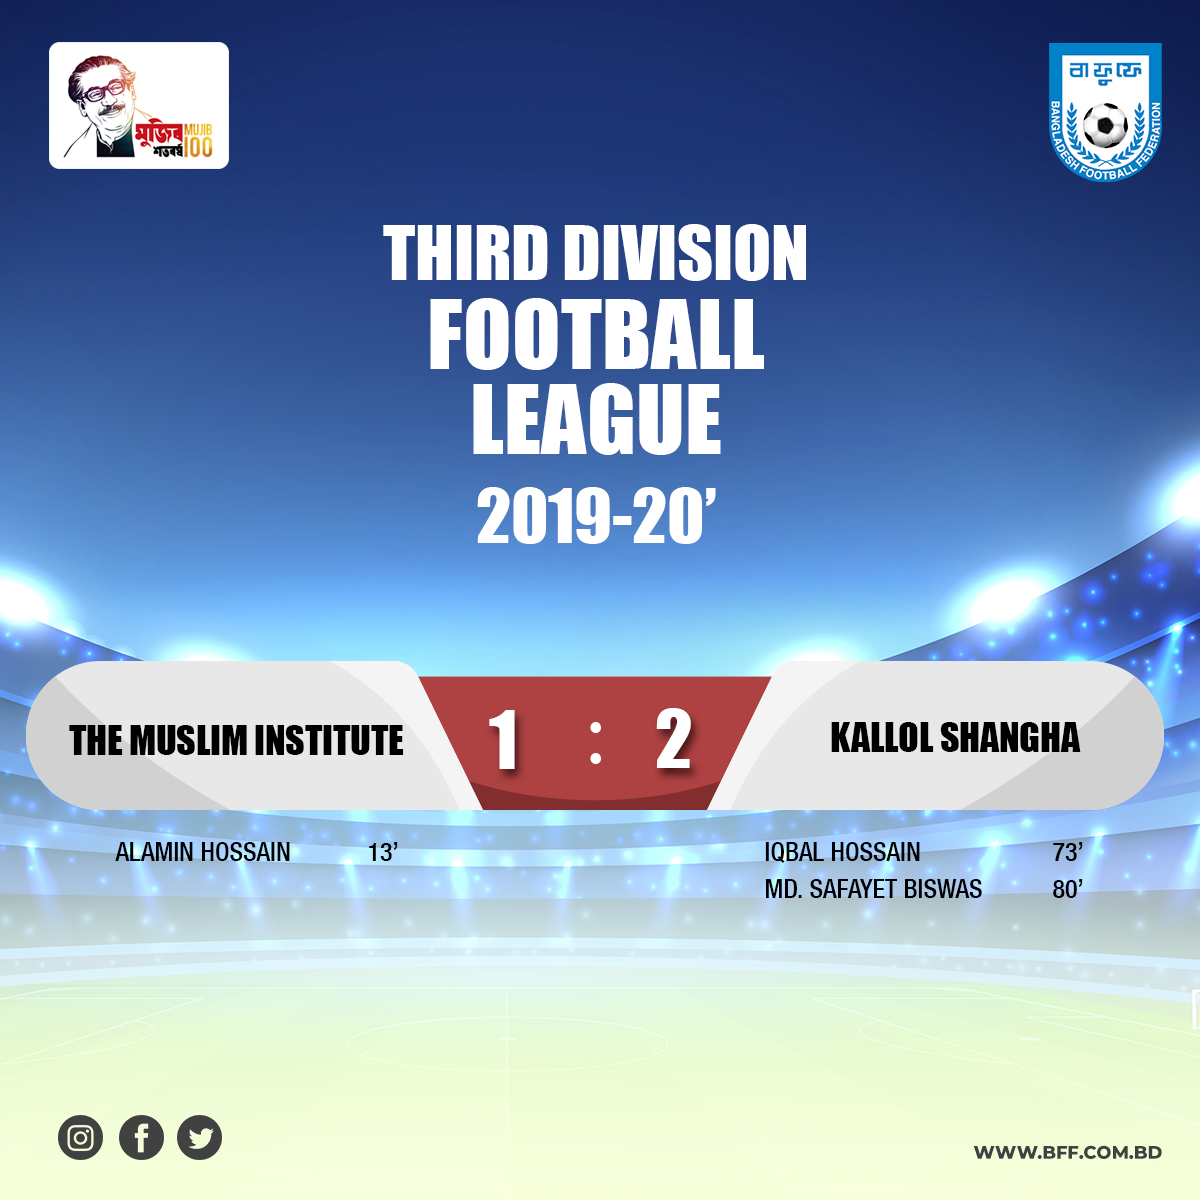 Kallol Shangha defeated The Muslim Institute by 2-1 goals.